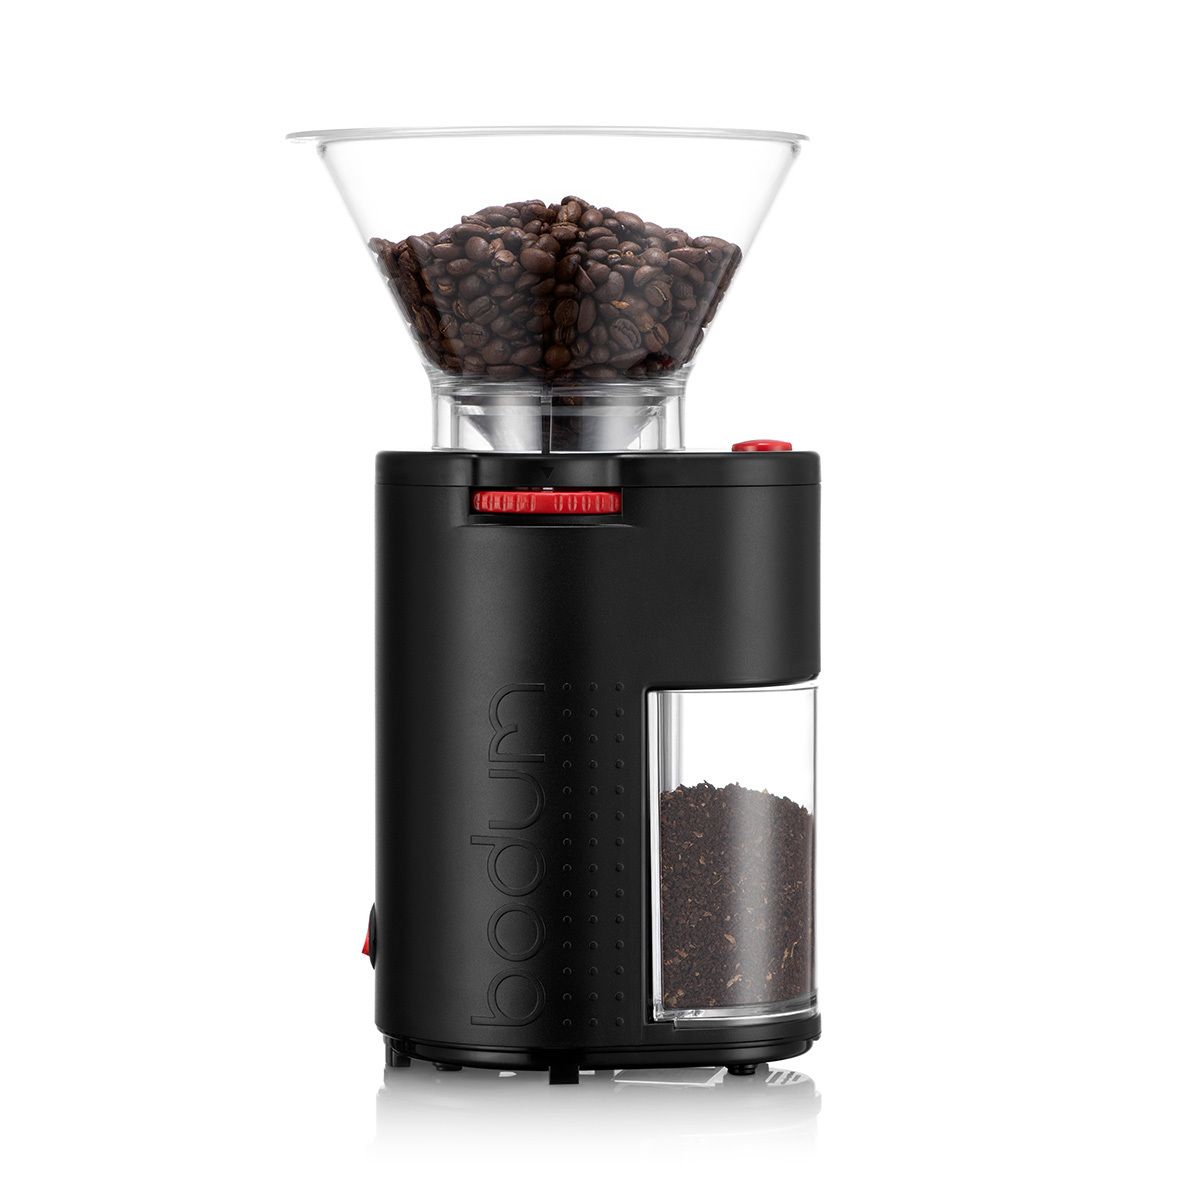 BODUM Electric Coffee Grinder BISTRO - 220g